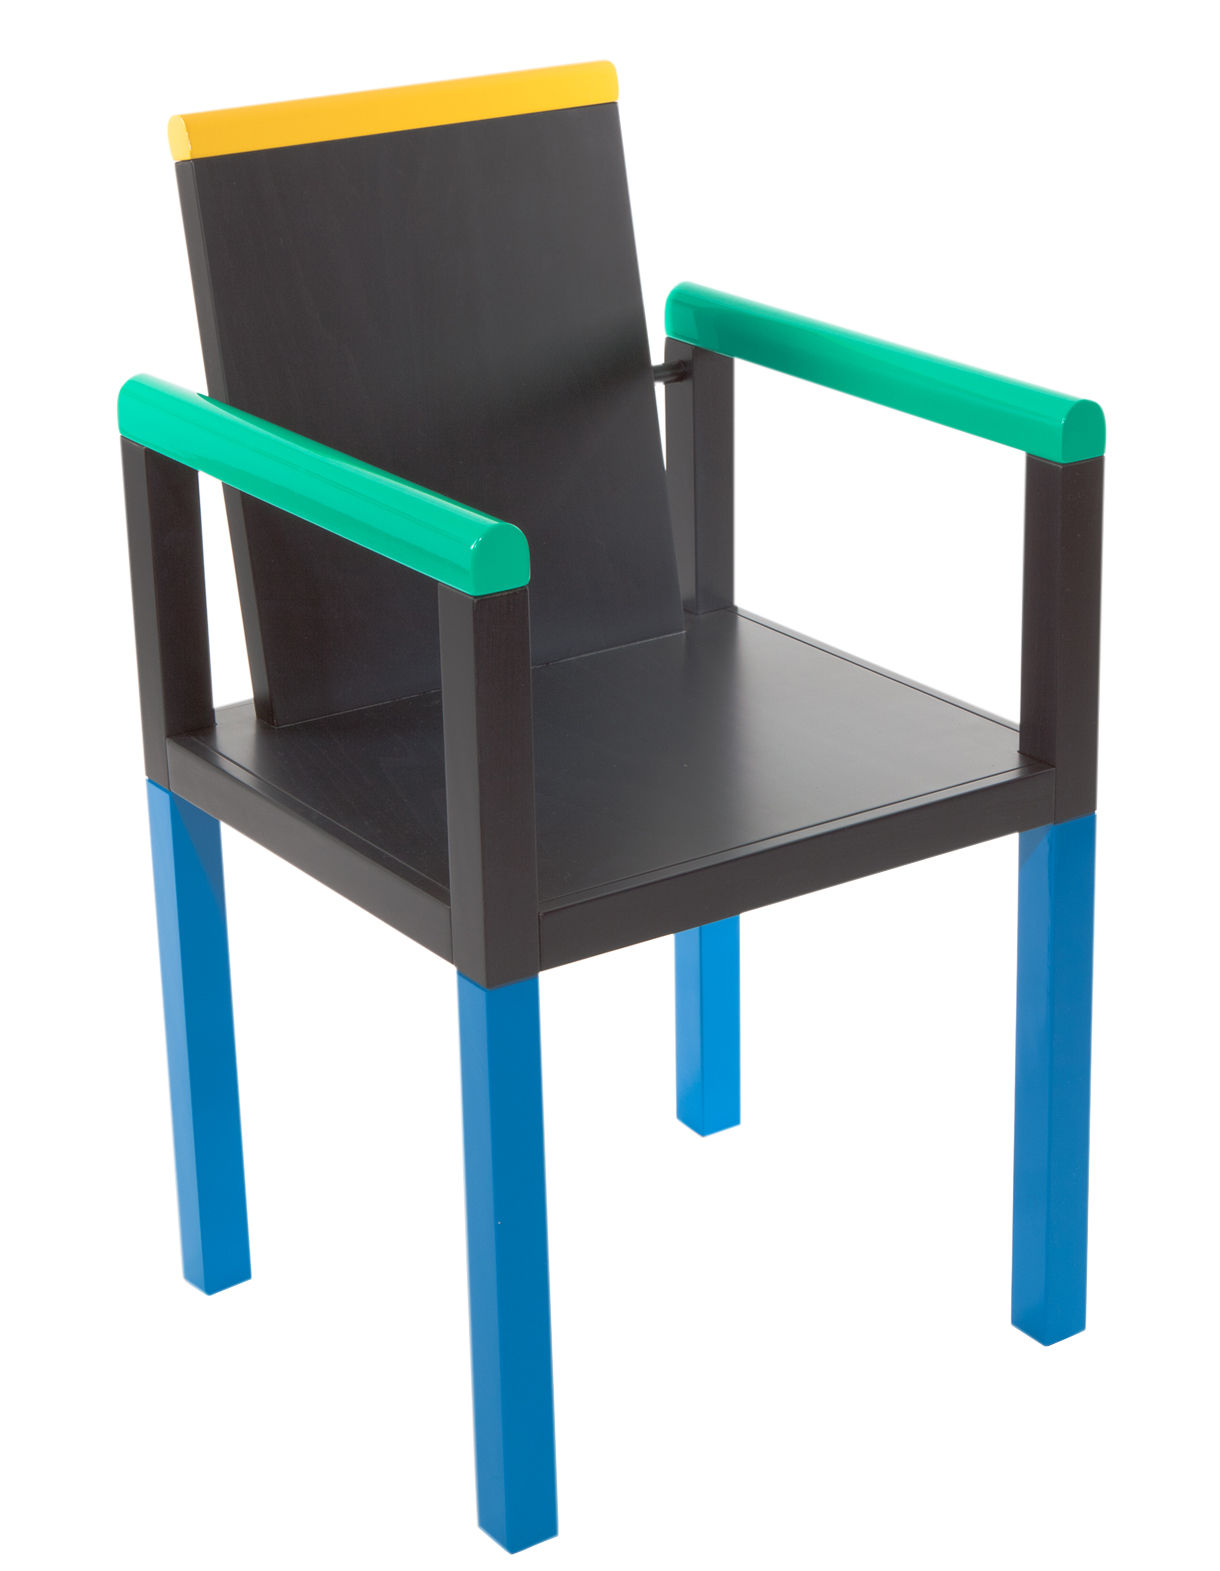 Furniture - Chairs - Palace Armchair - by George J. Sowden / 1983 by Memphis Milano - Multicolored - Lacquered wood